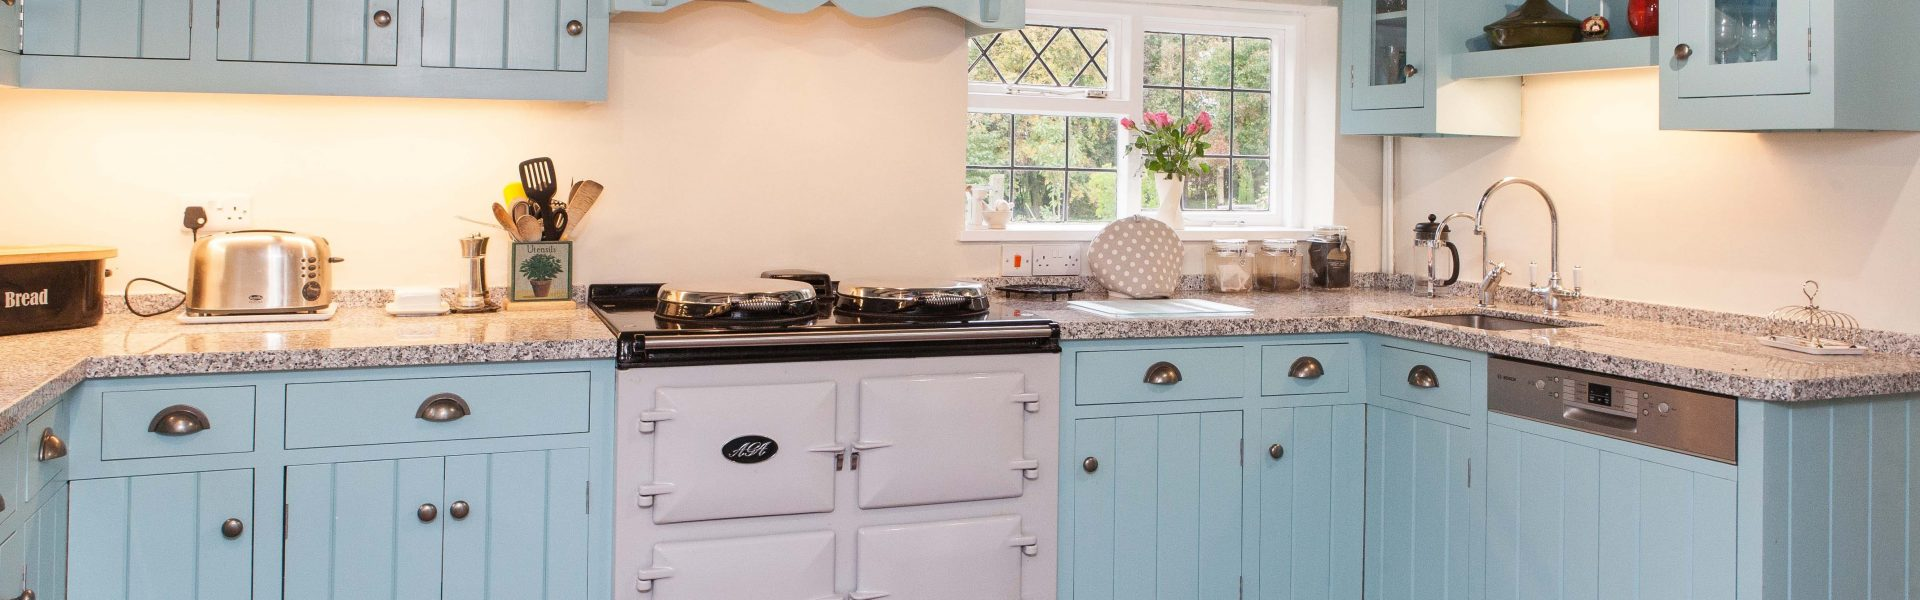 bespoke kitchen for traditional property